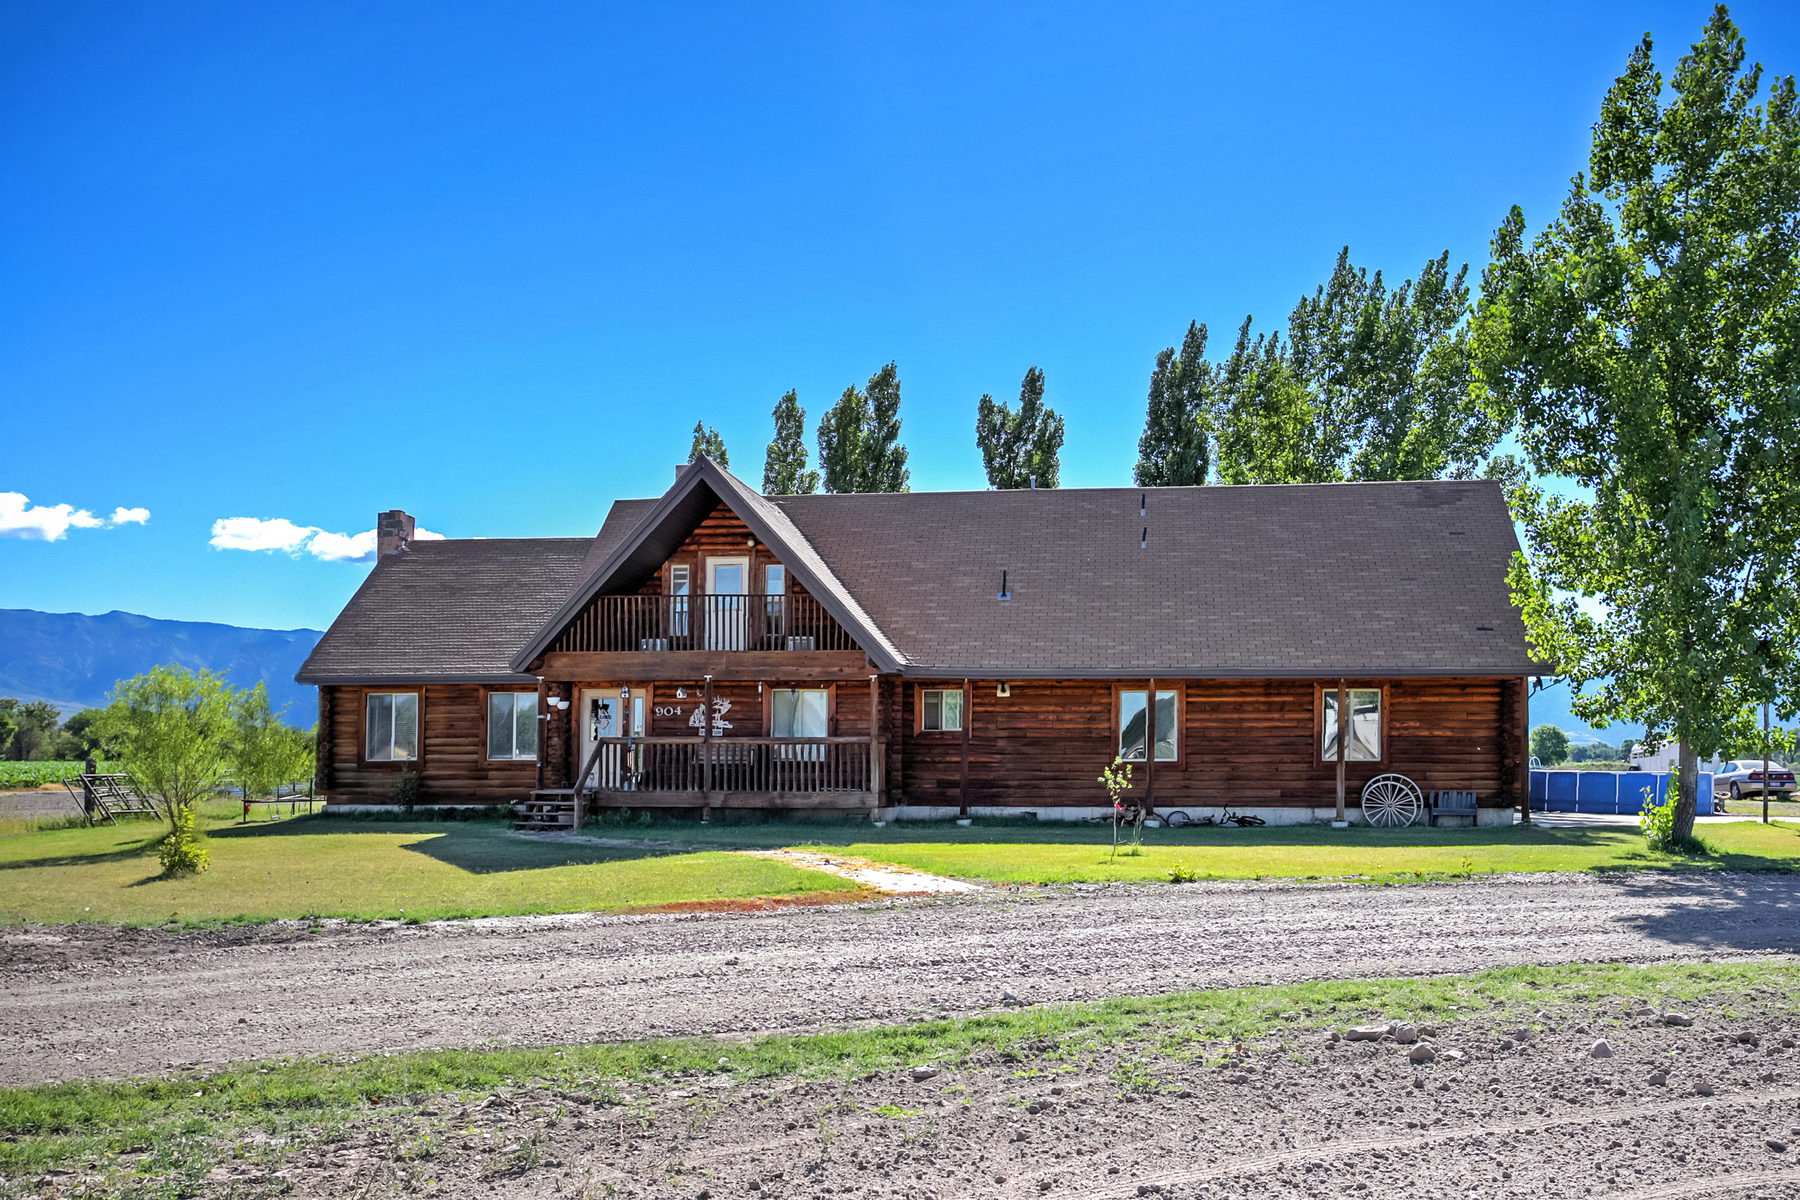 Maison unifamiliale pour l Vente à Unique Horse Property With Amazing Views 904 North 4400 West Ogden, Utah, 84404 États-Unis